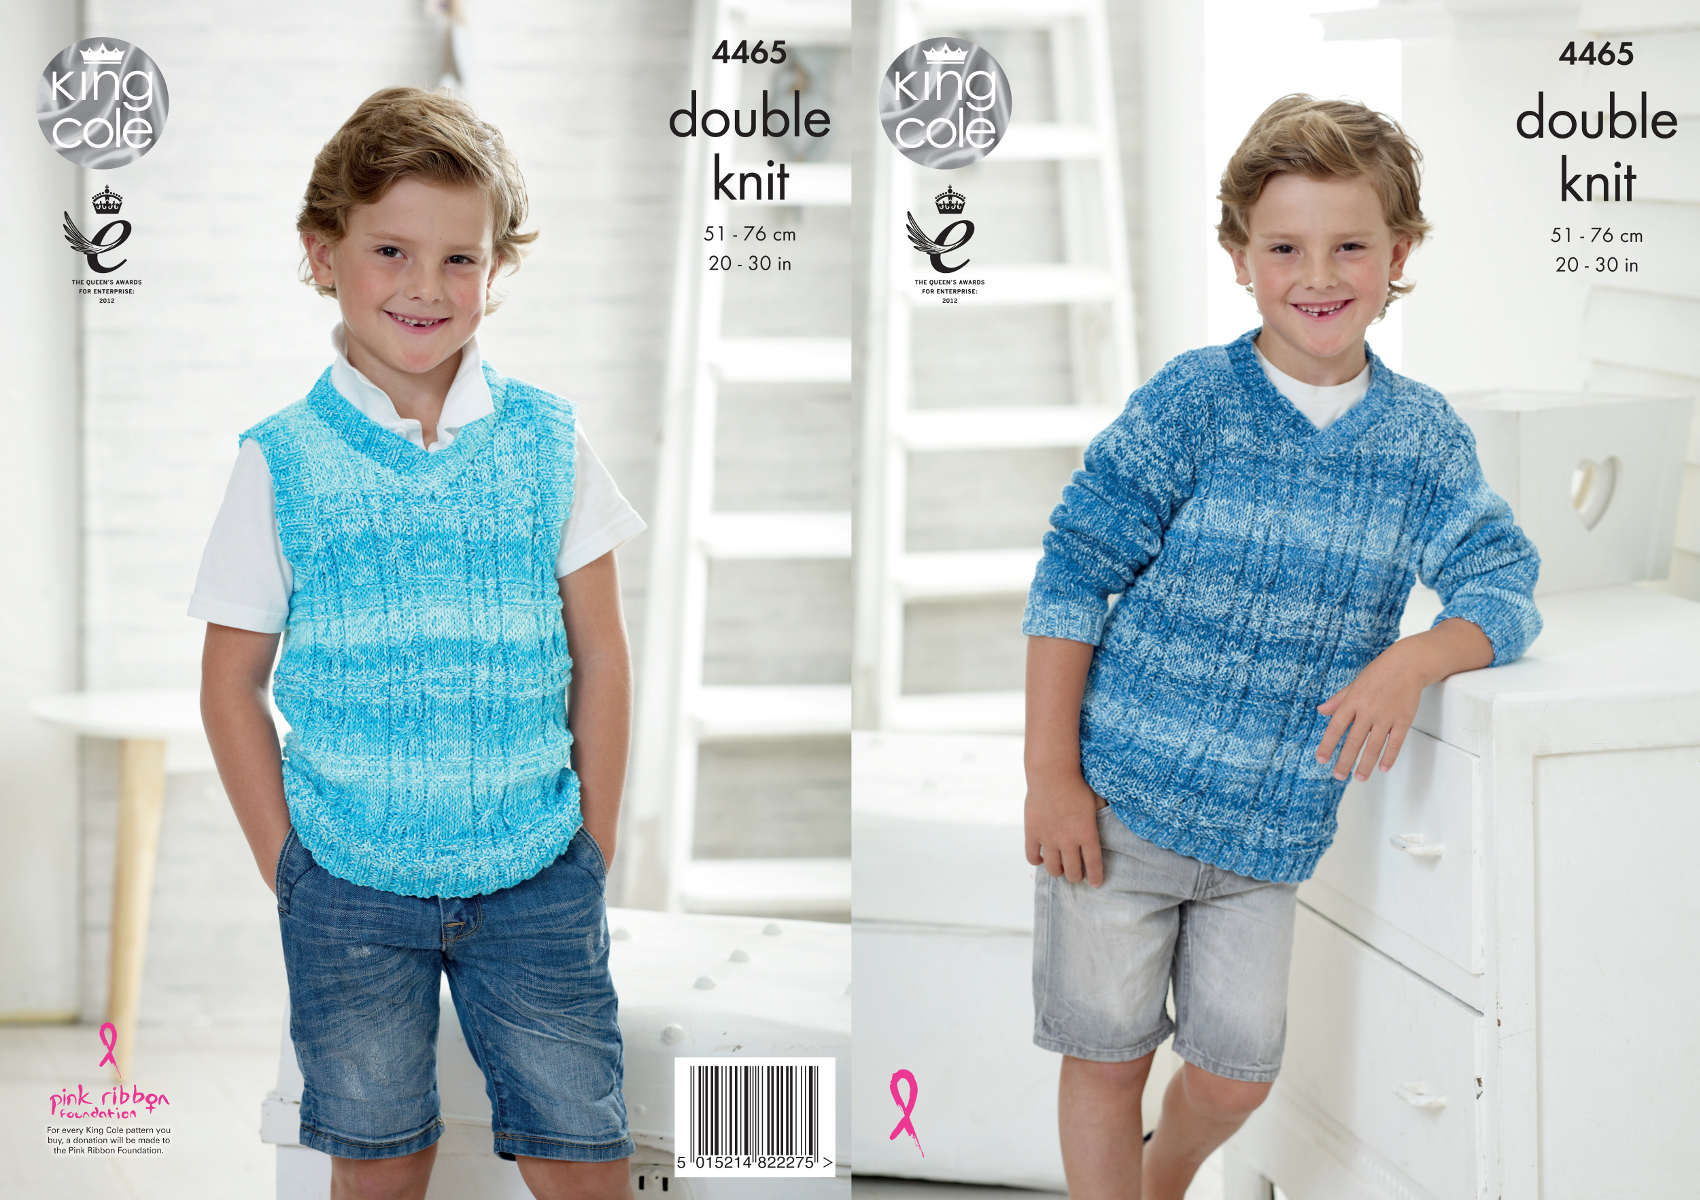 Knitted Tank Top Patterns Details About King Cole Boys Double Knitting Pattern V Neck Sweater Tank Top Vogue Dk 4465